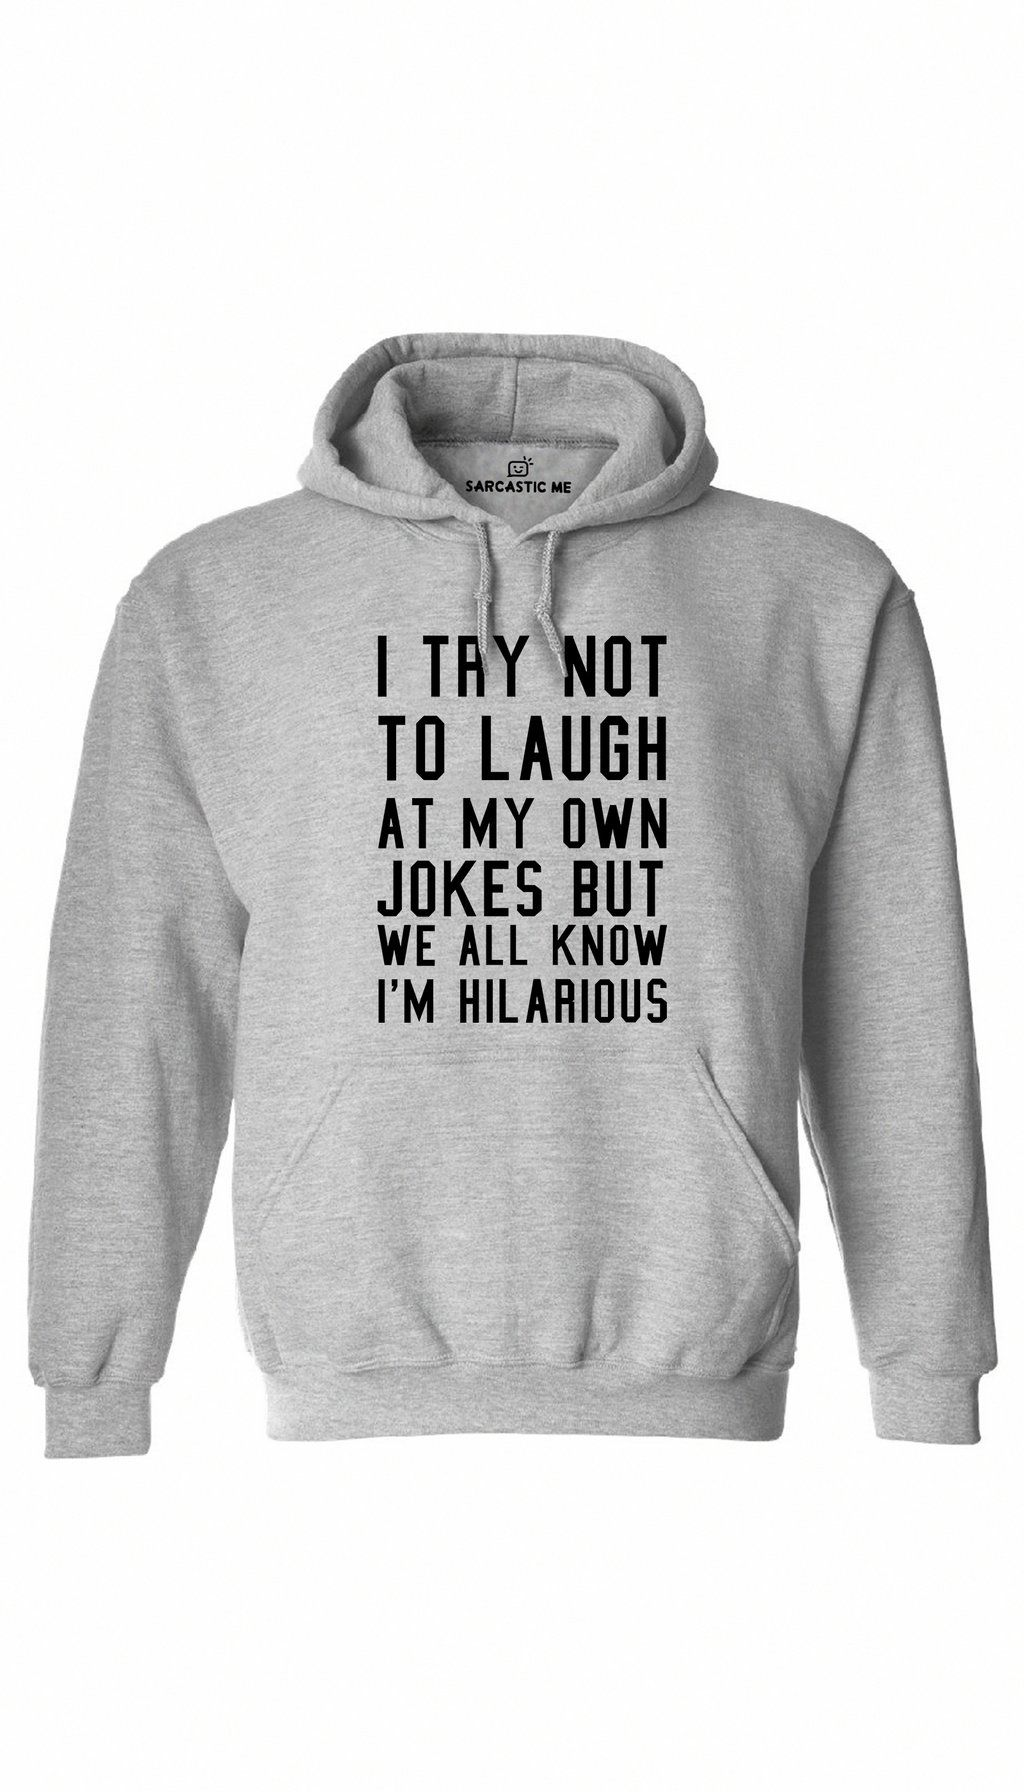 I Try Not To Laugh Hoodie Sarcastic Clothing Funny Outfits Funny Sweaters [ 1792 x 1024 Pixel ]